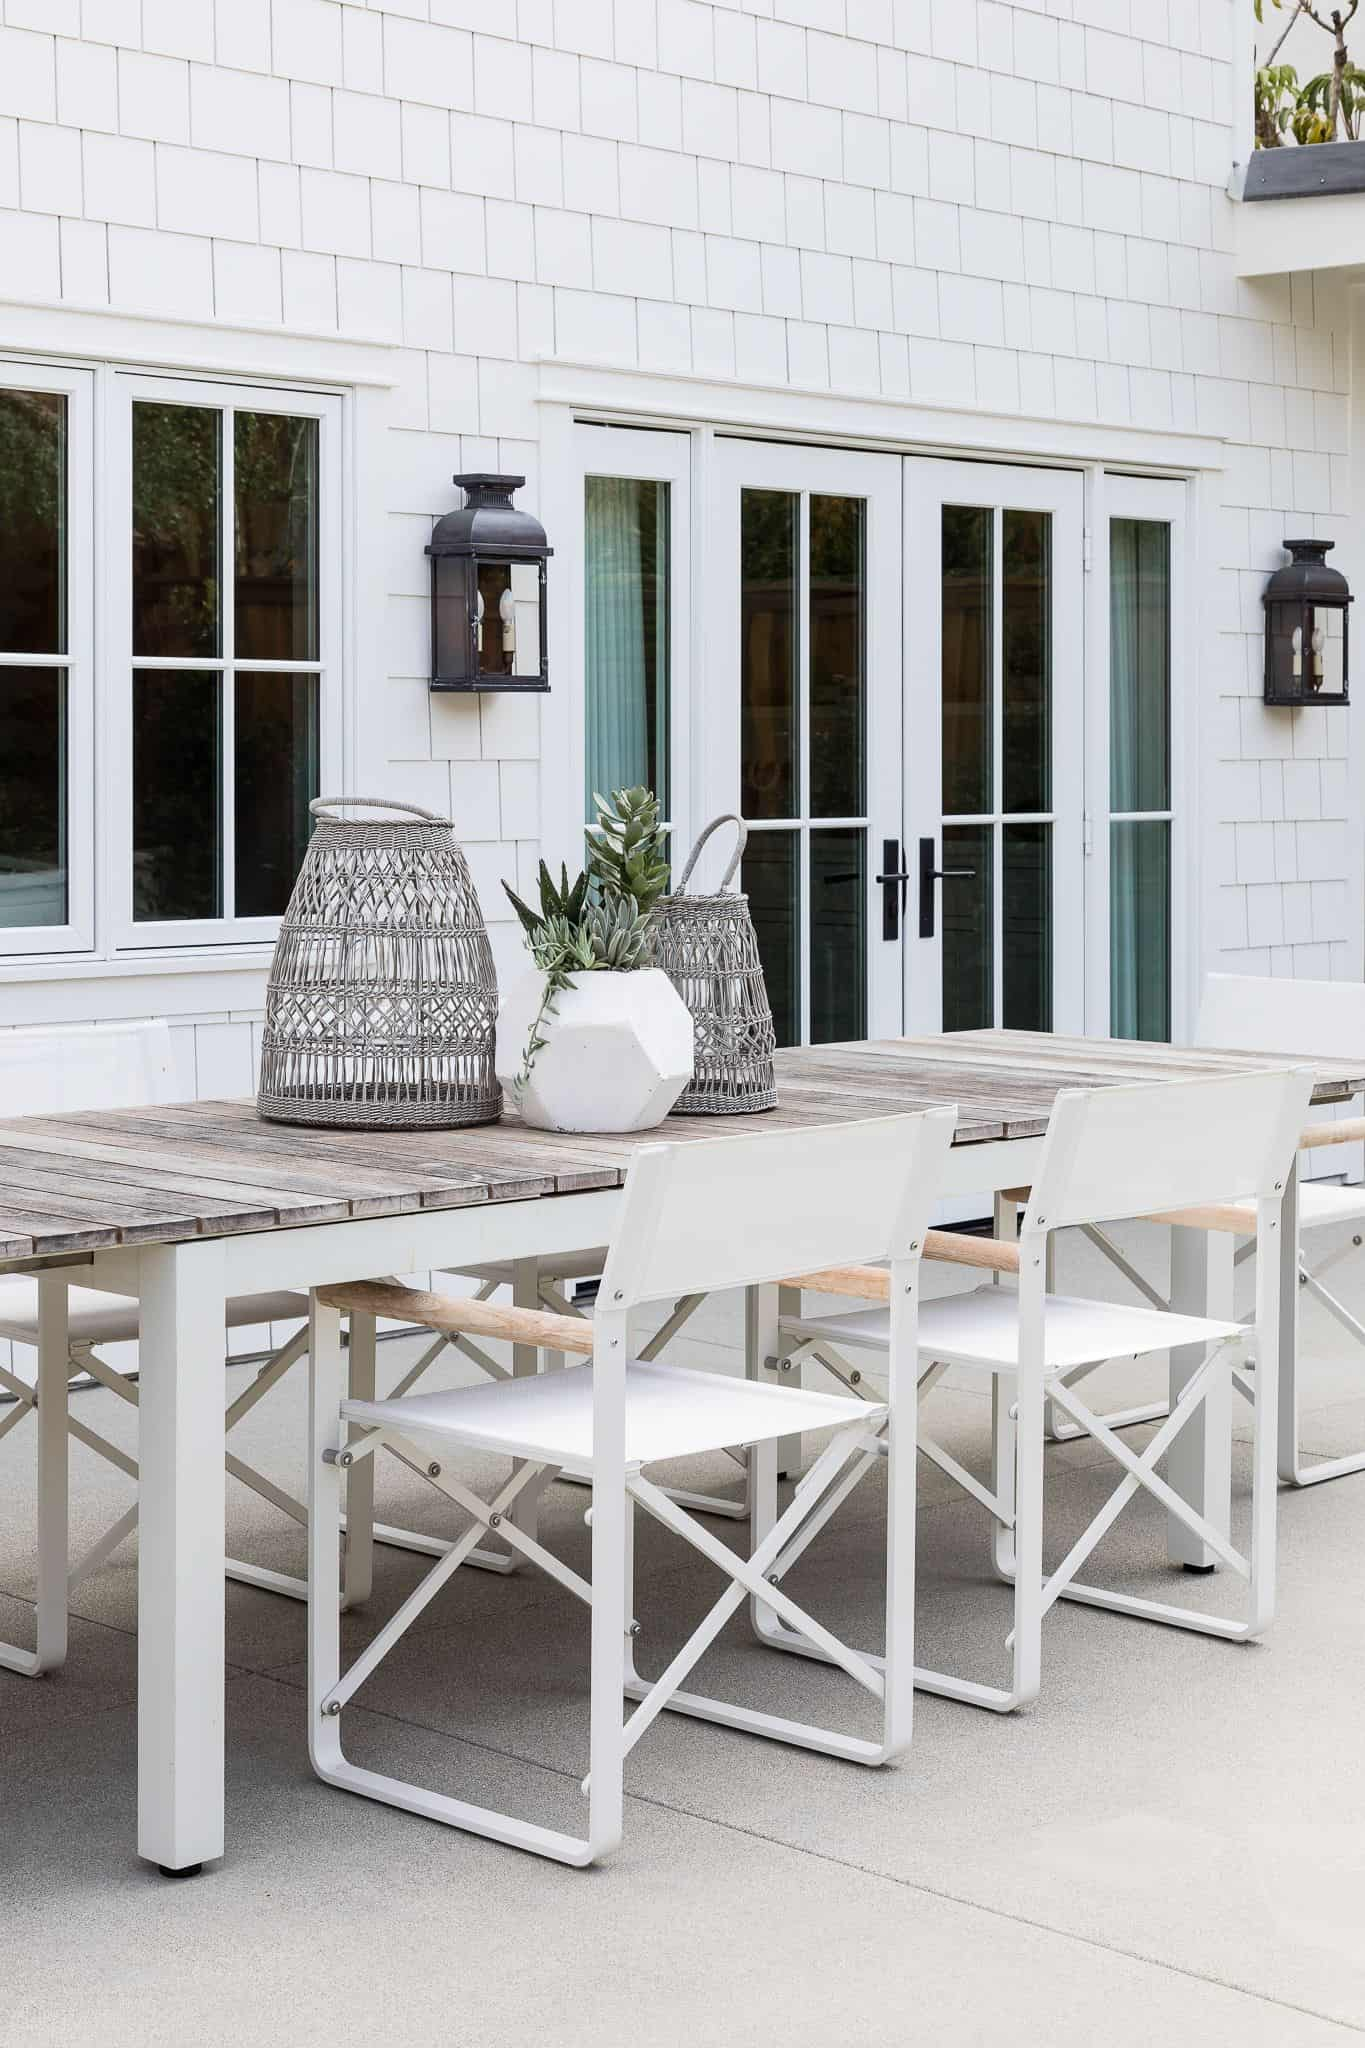 Outdoor Dining Area - Port Newport Project - Mindy Gayer Design Co.